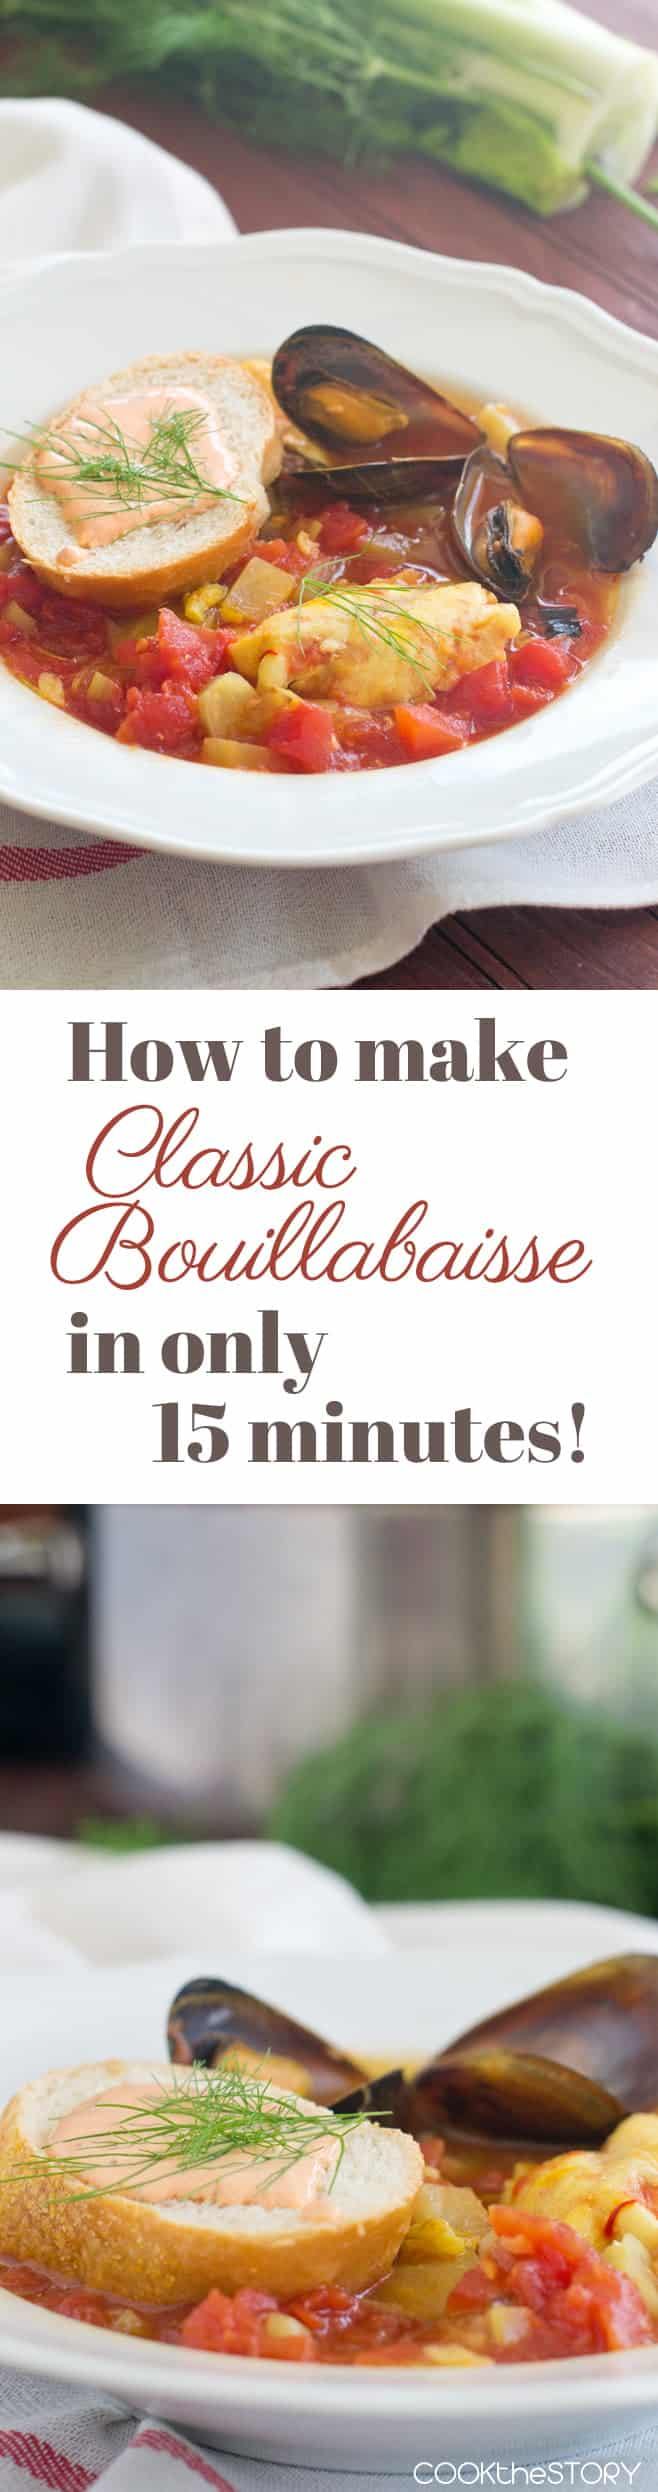 Classic Bouillabaisse with Garlicky Rouille Sauce